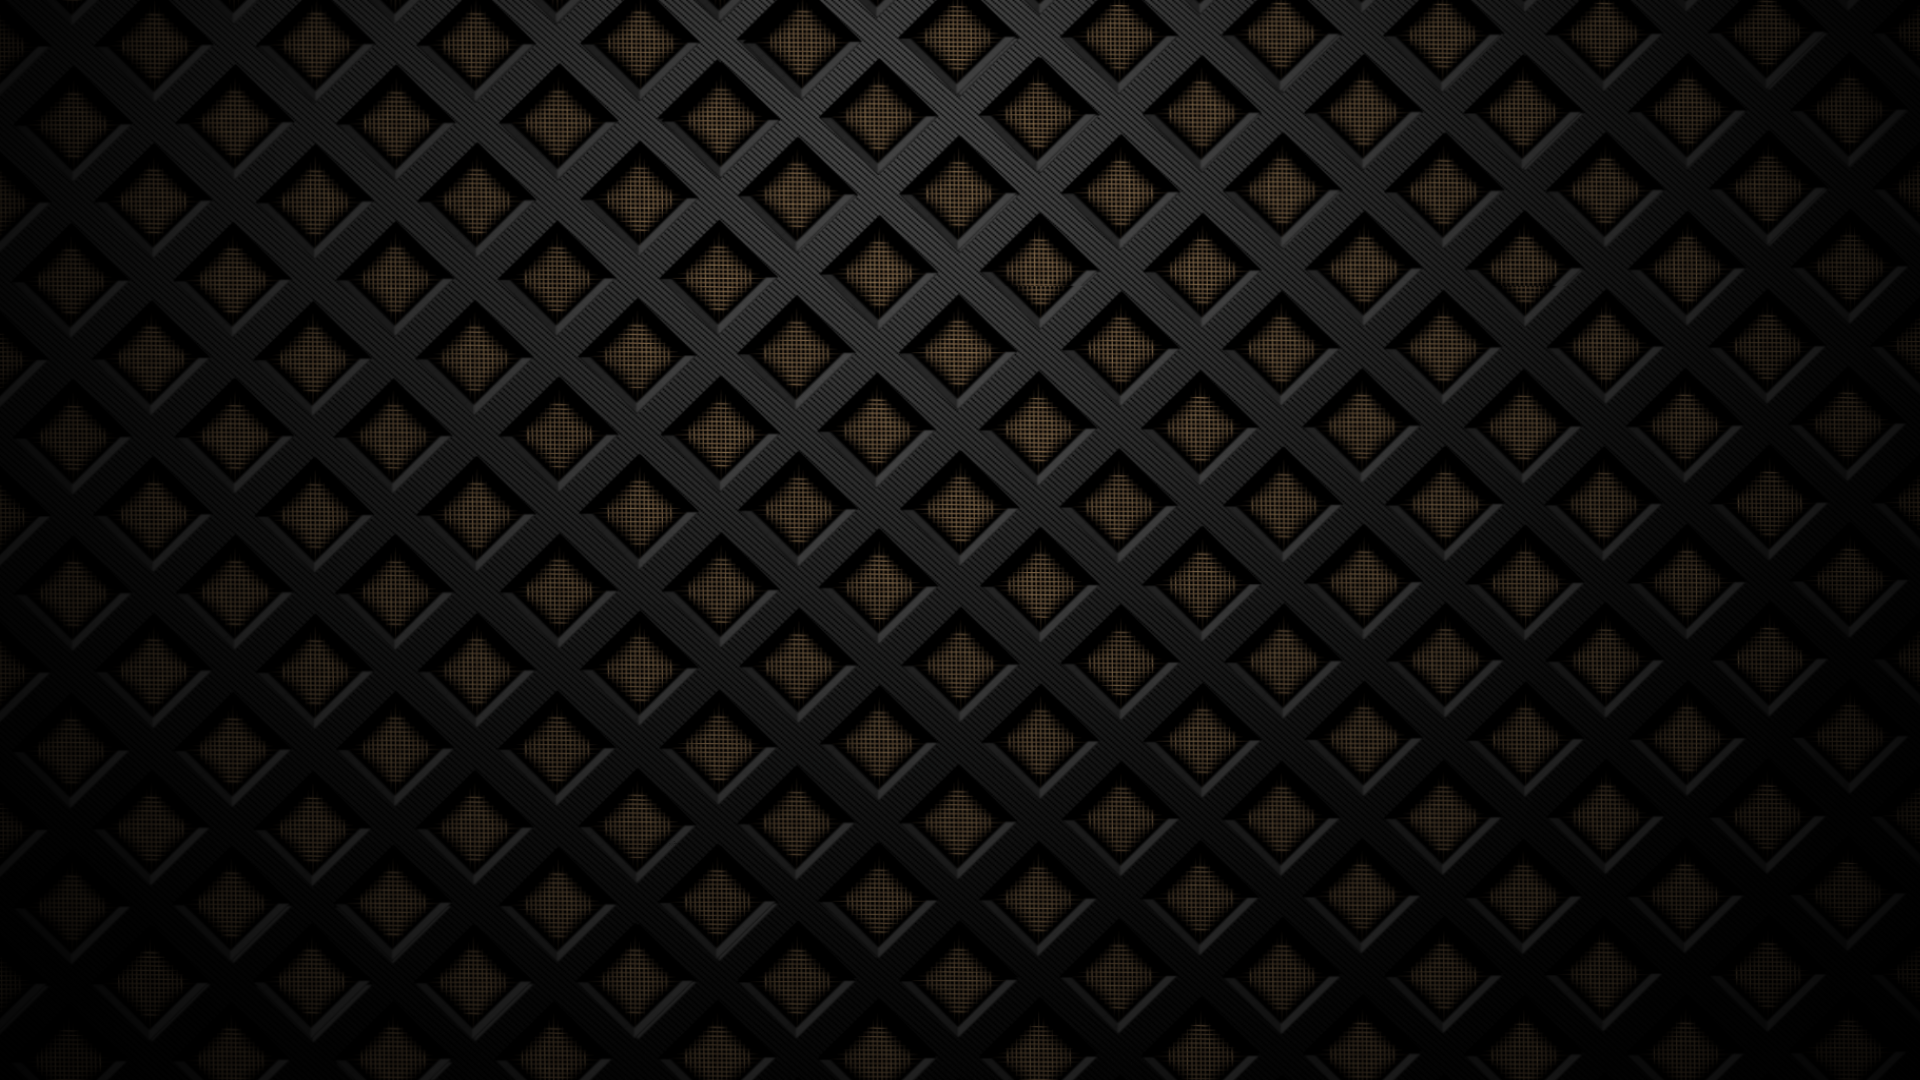 110 super hd textured and patterned wallpapers for your mobile devices